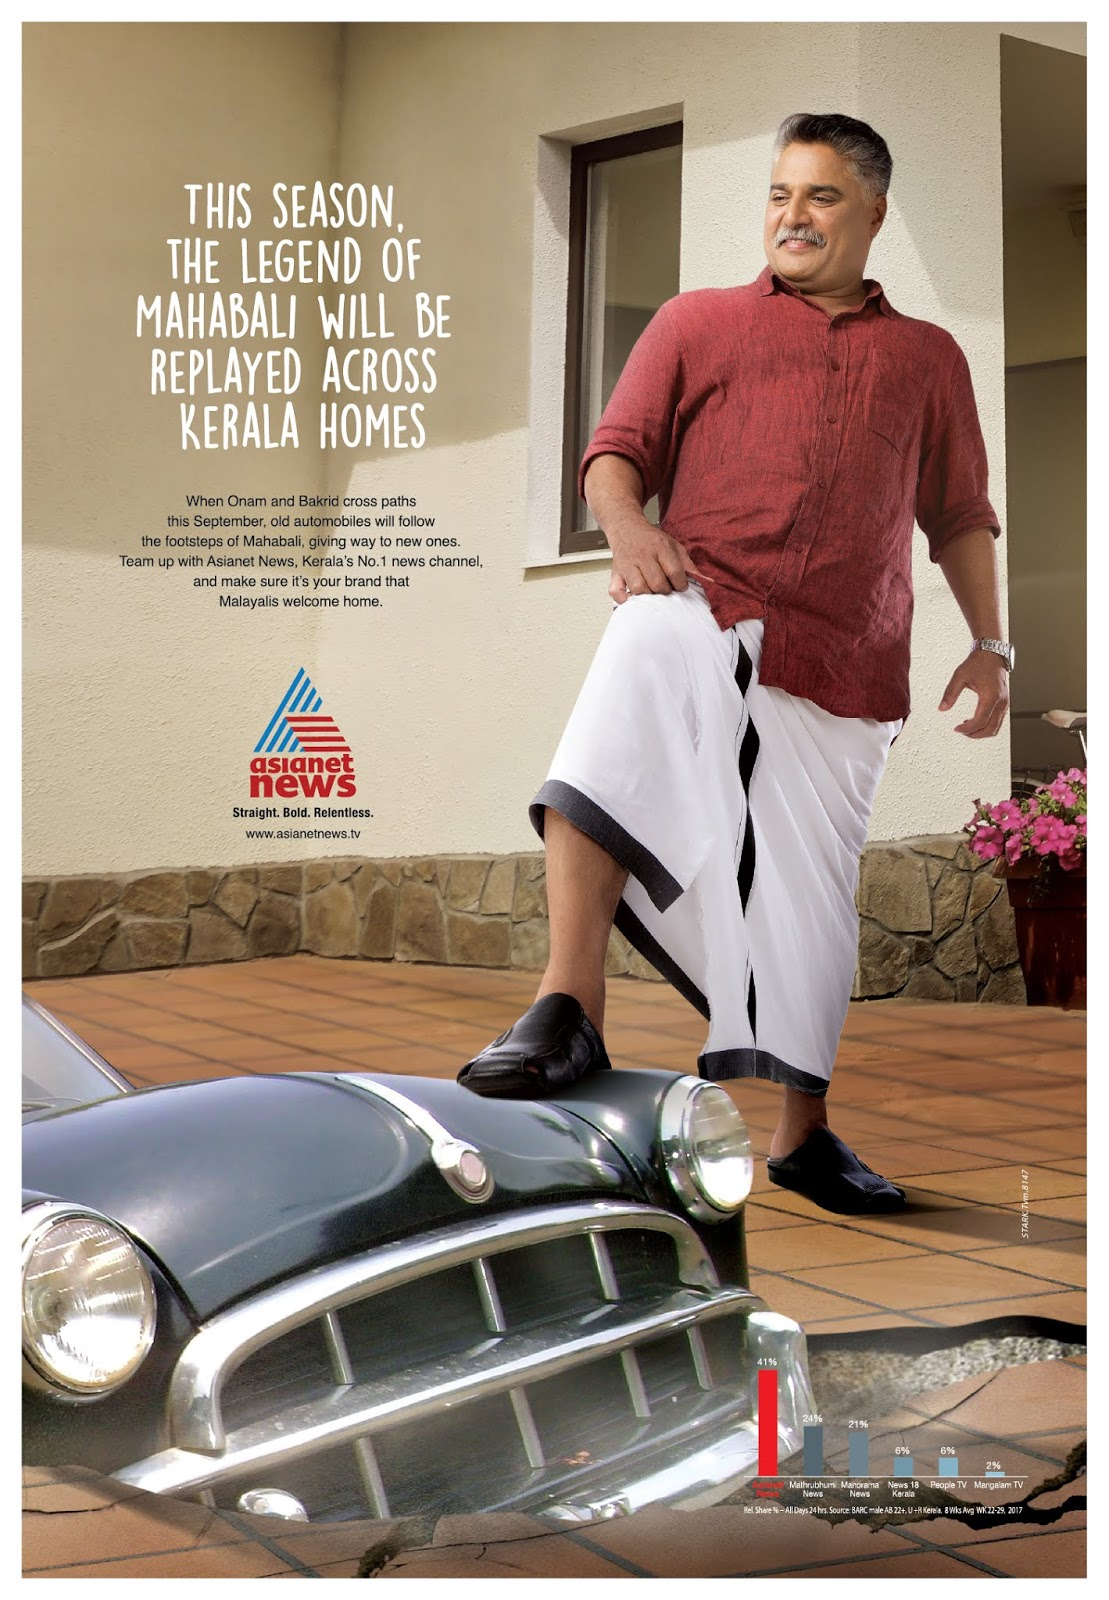 Celebrate this onam with Asianet News in The Mahabali Way 3| Stark Communications Pvt Ltd